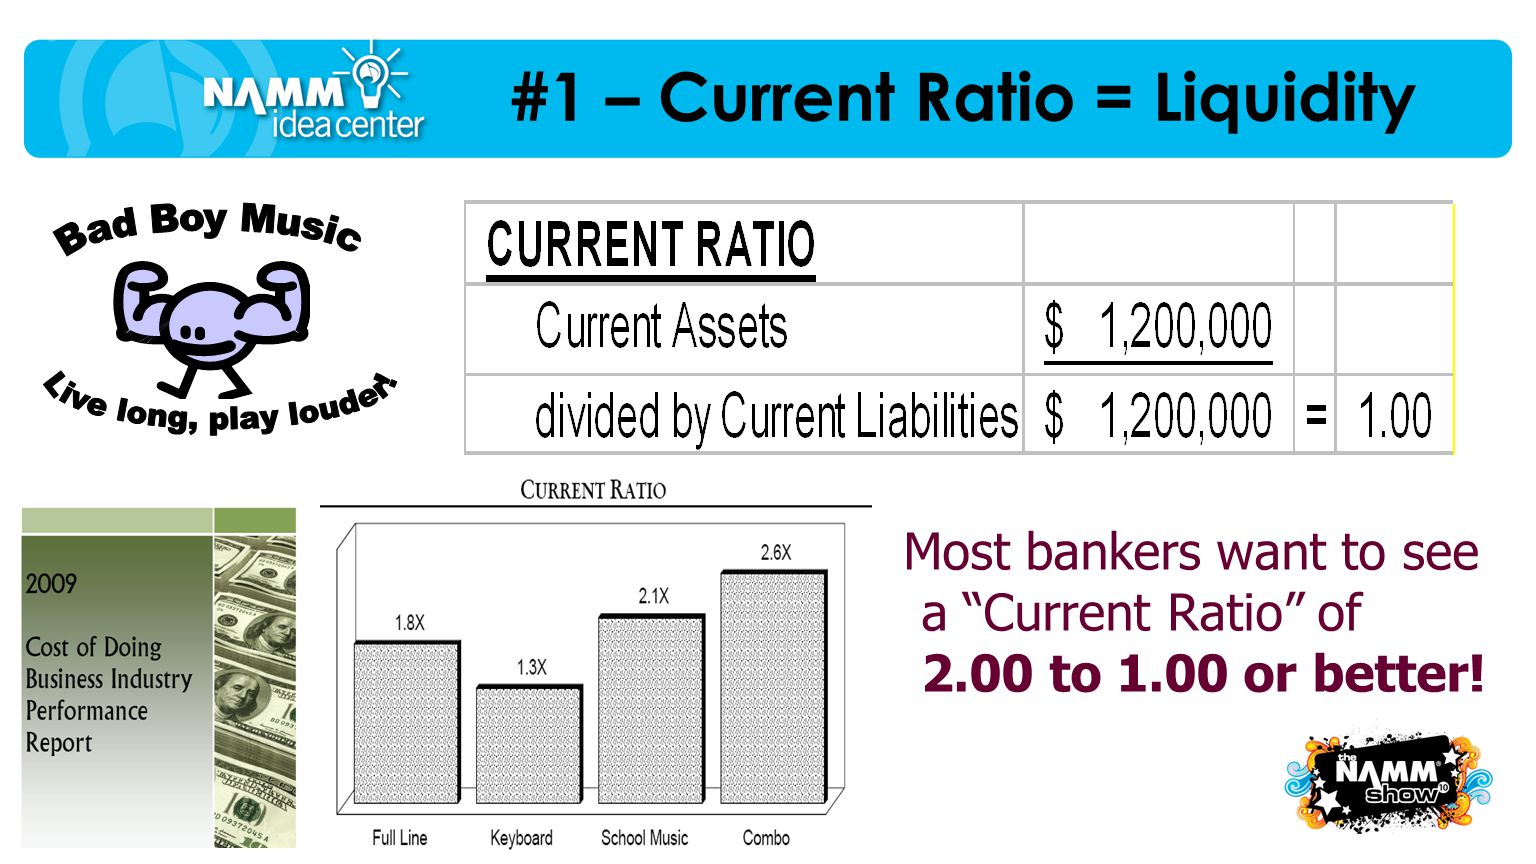 "Most bankers want to see a ""Current Ratio"" of 2.00 to 1.00 or better!"